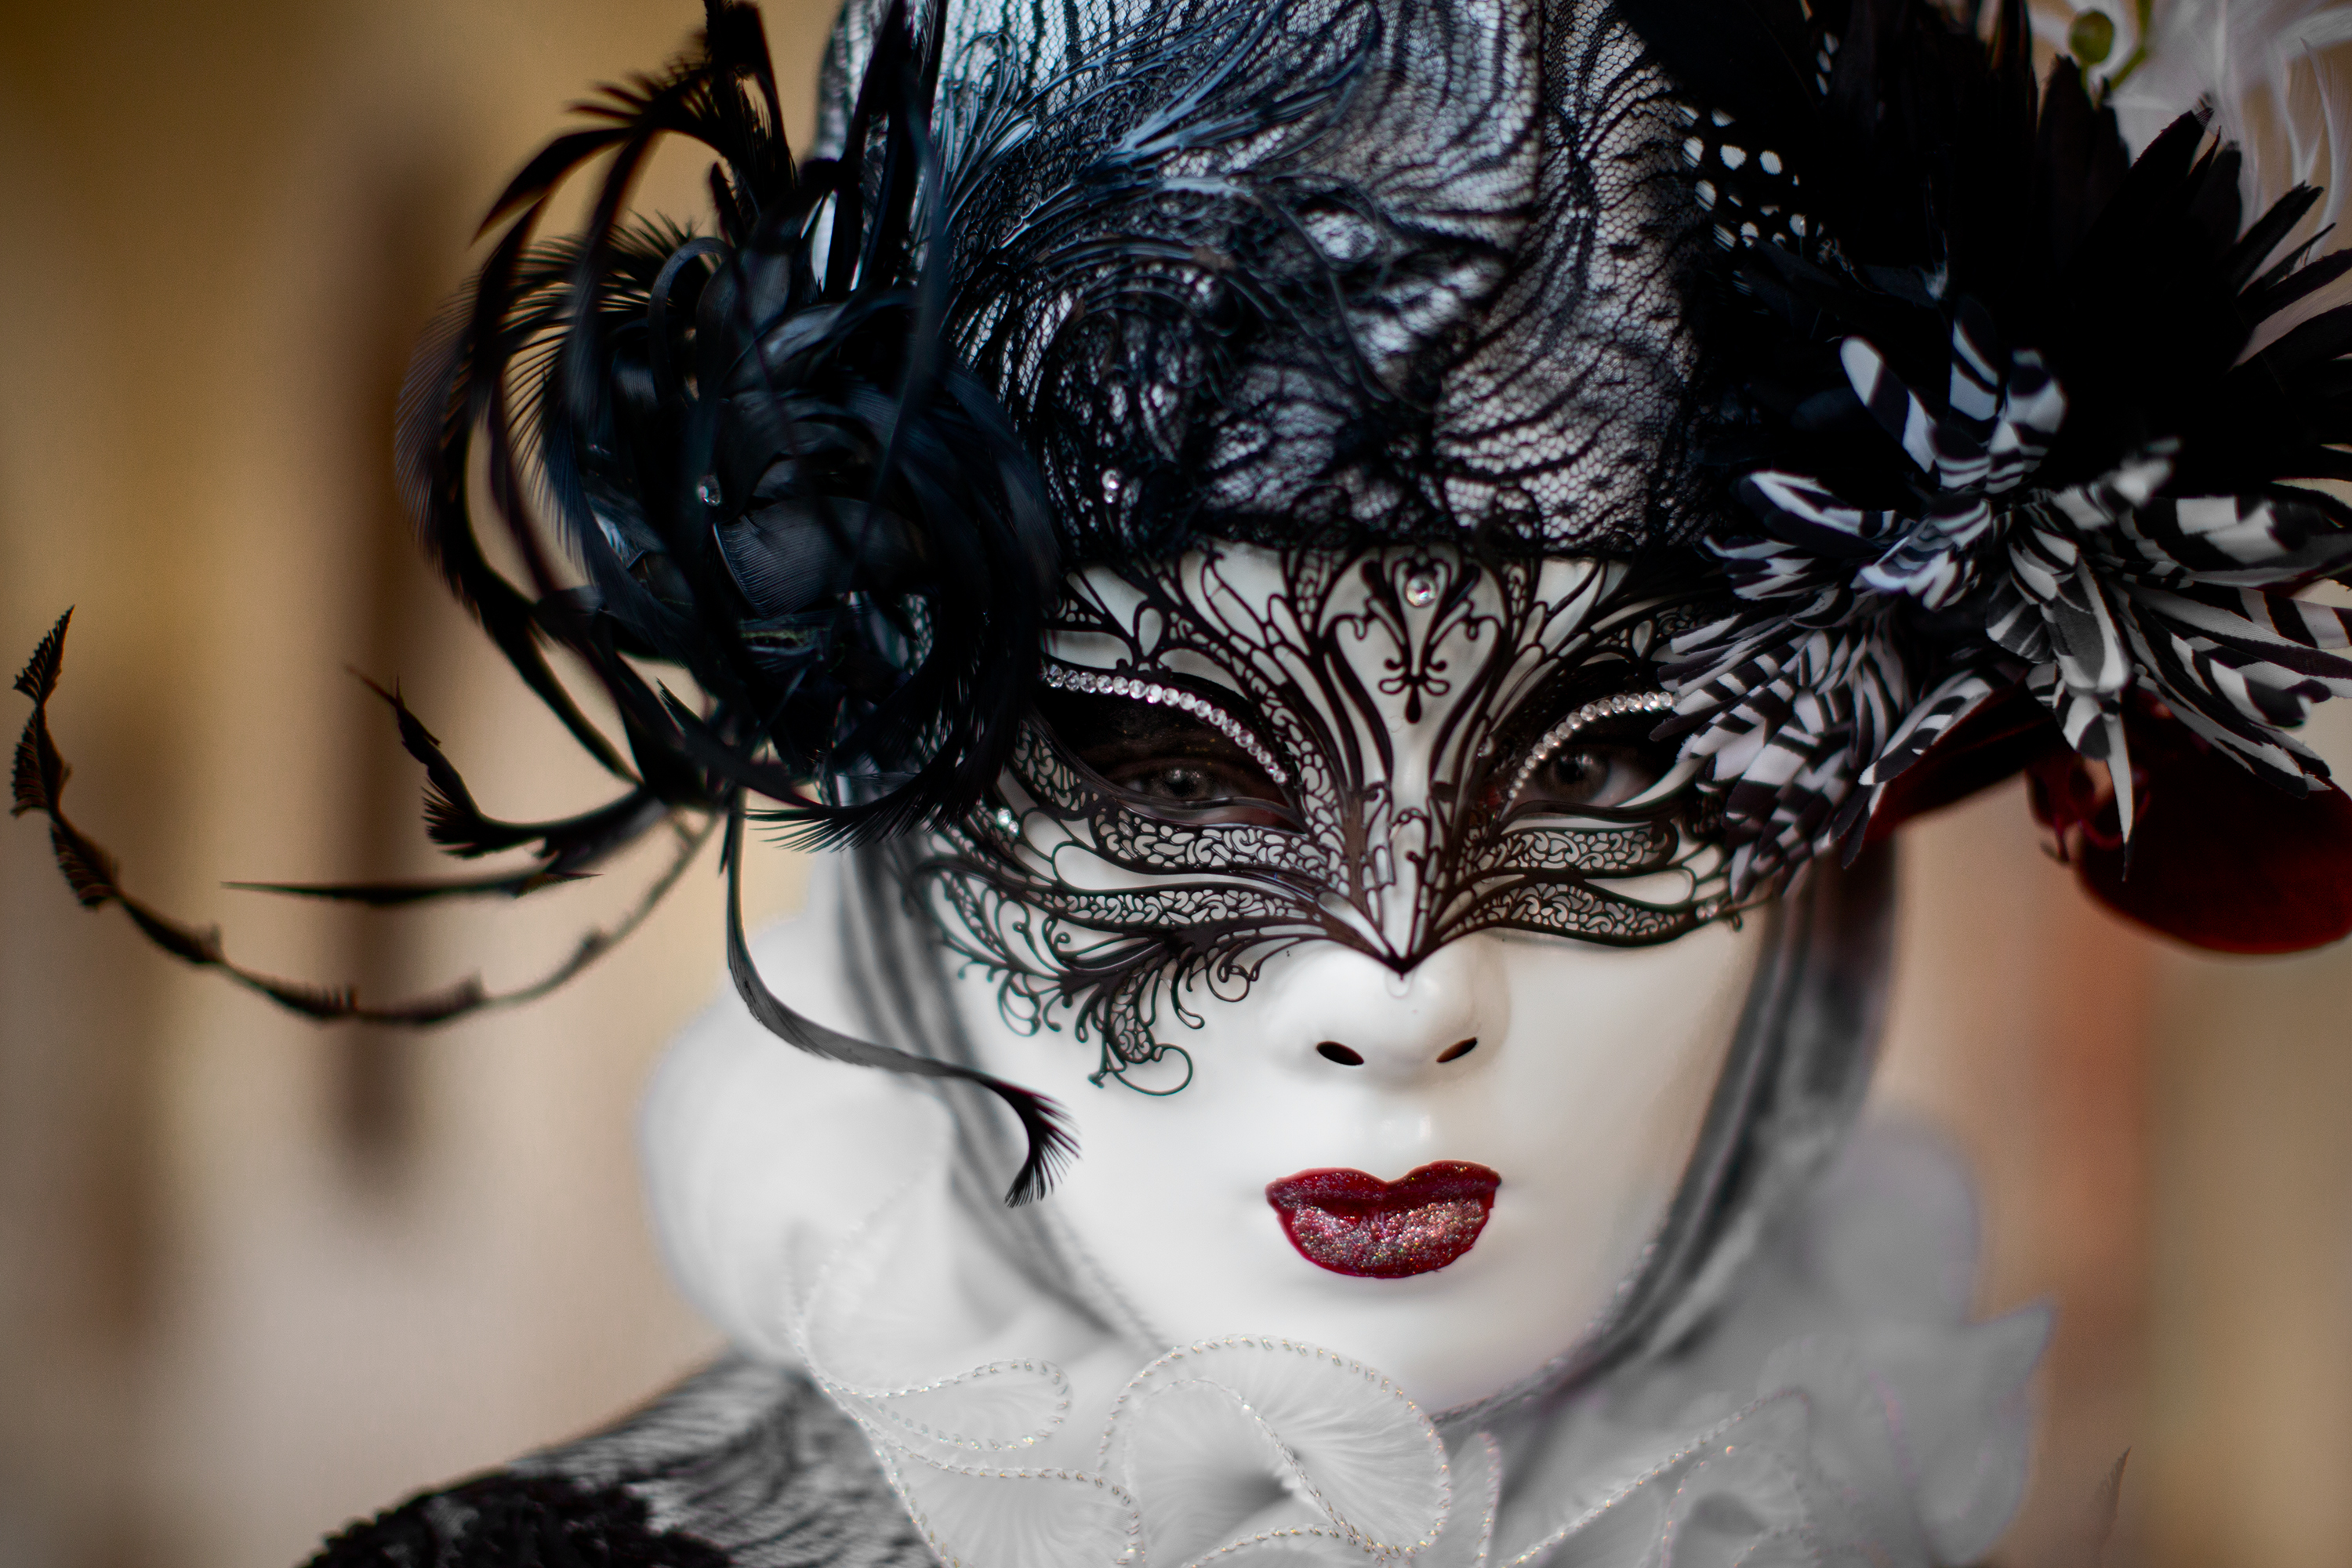 Performer in Black Feathered Mask